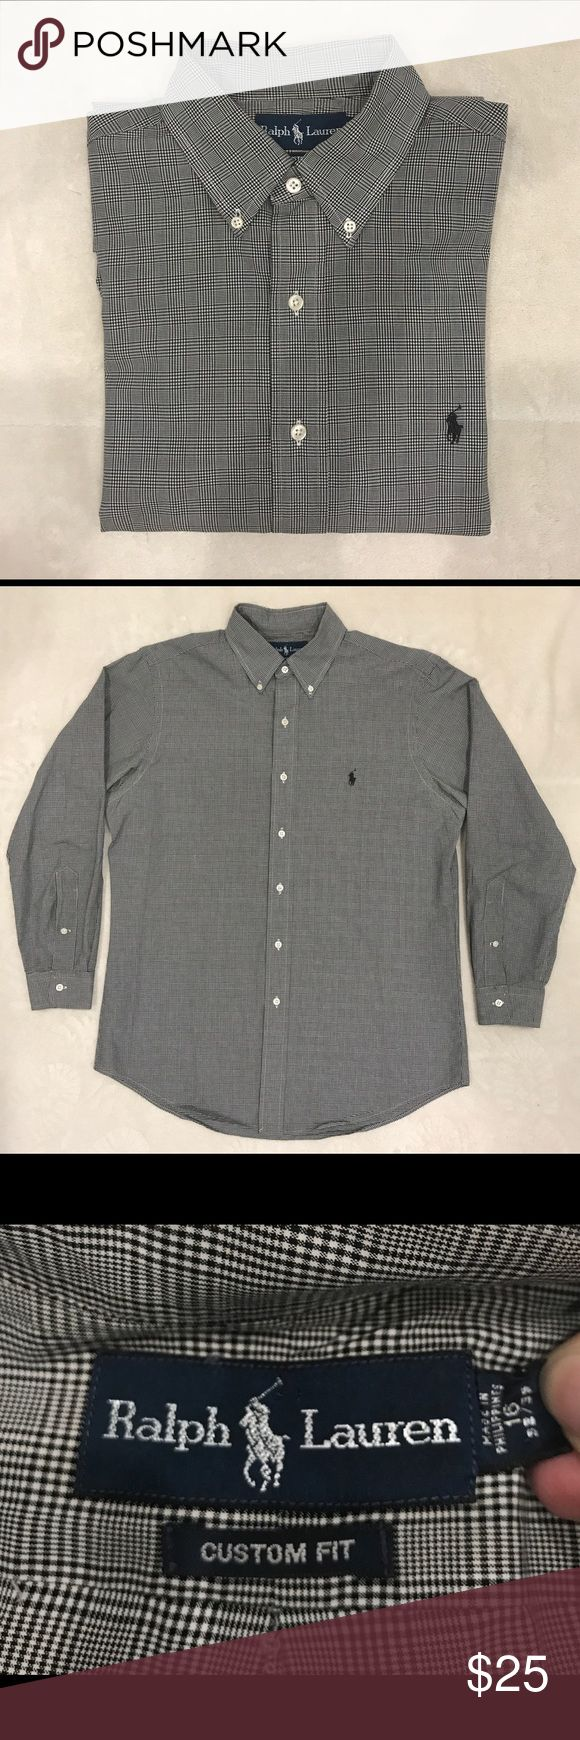 Ralph Lauren custom fit long sleeve dress shirt In pristine condition! Black/grey check pattern. Great neutral dress shirt. No stains, no holes. All buttons intact. Well cared for. From a smoke-free home. 32/33 sleeves. Ralph Lauren Shirts Dress Shirts